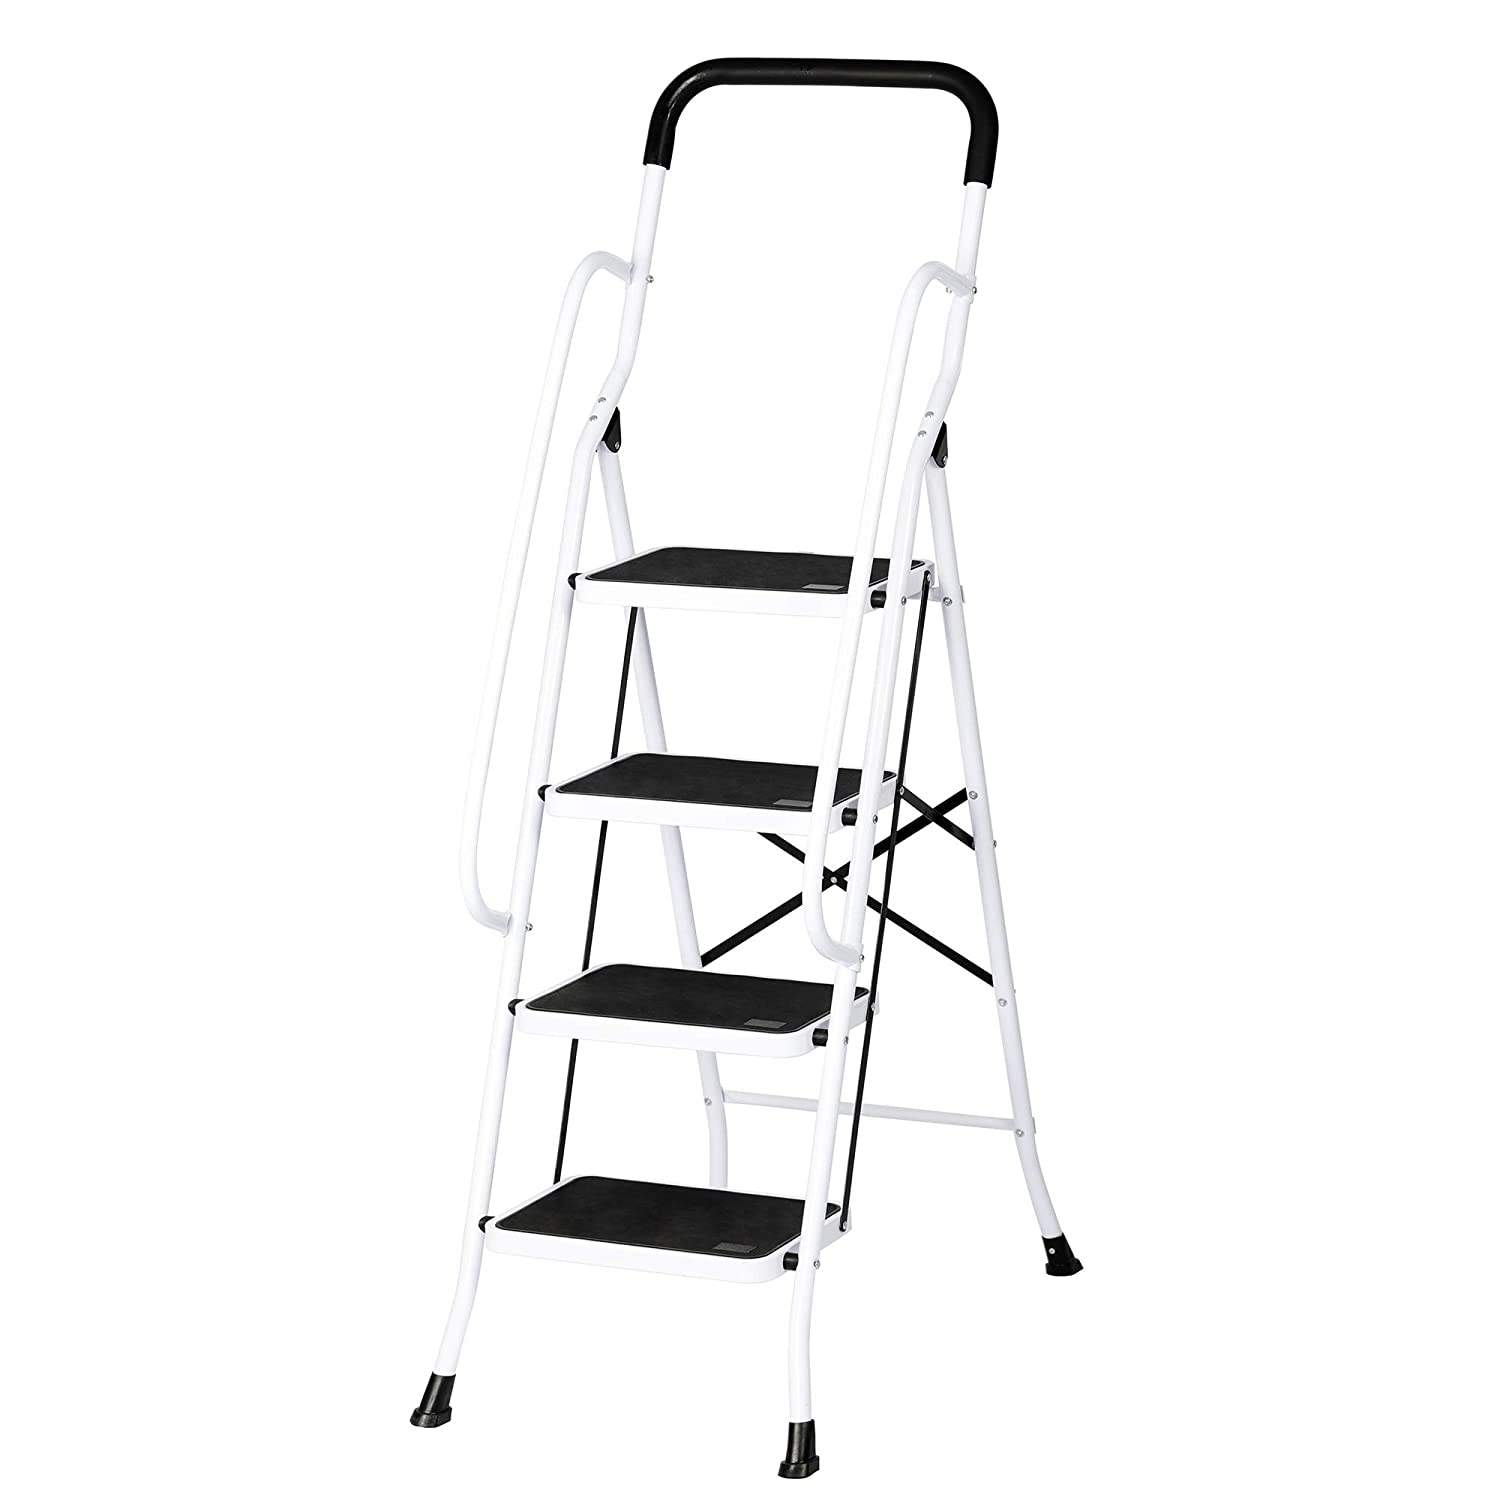 Dporticus Portable Anti-Slip 4 Step Ladder with Wide Pedal and Sturdy Handrails Folding Safty Steel Step Stool Multi-Use for Household,Market, Office